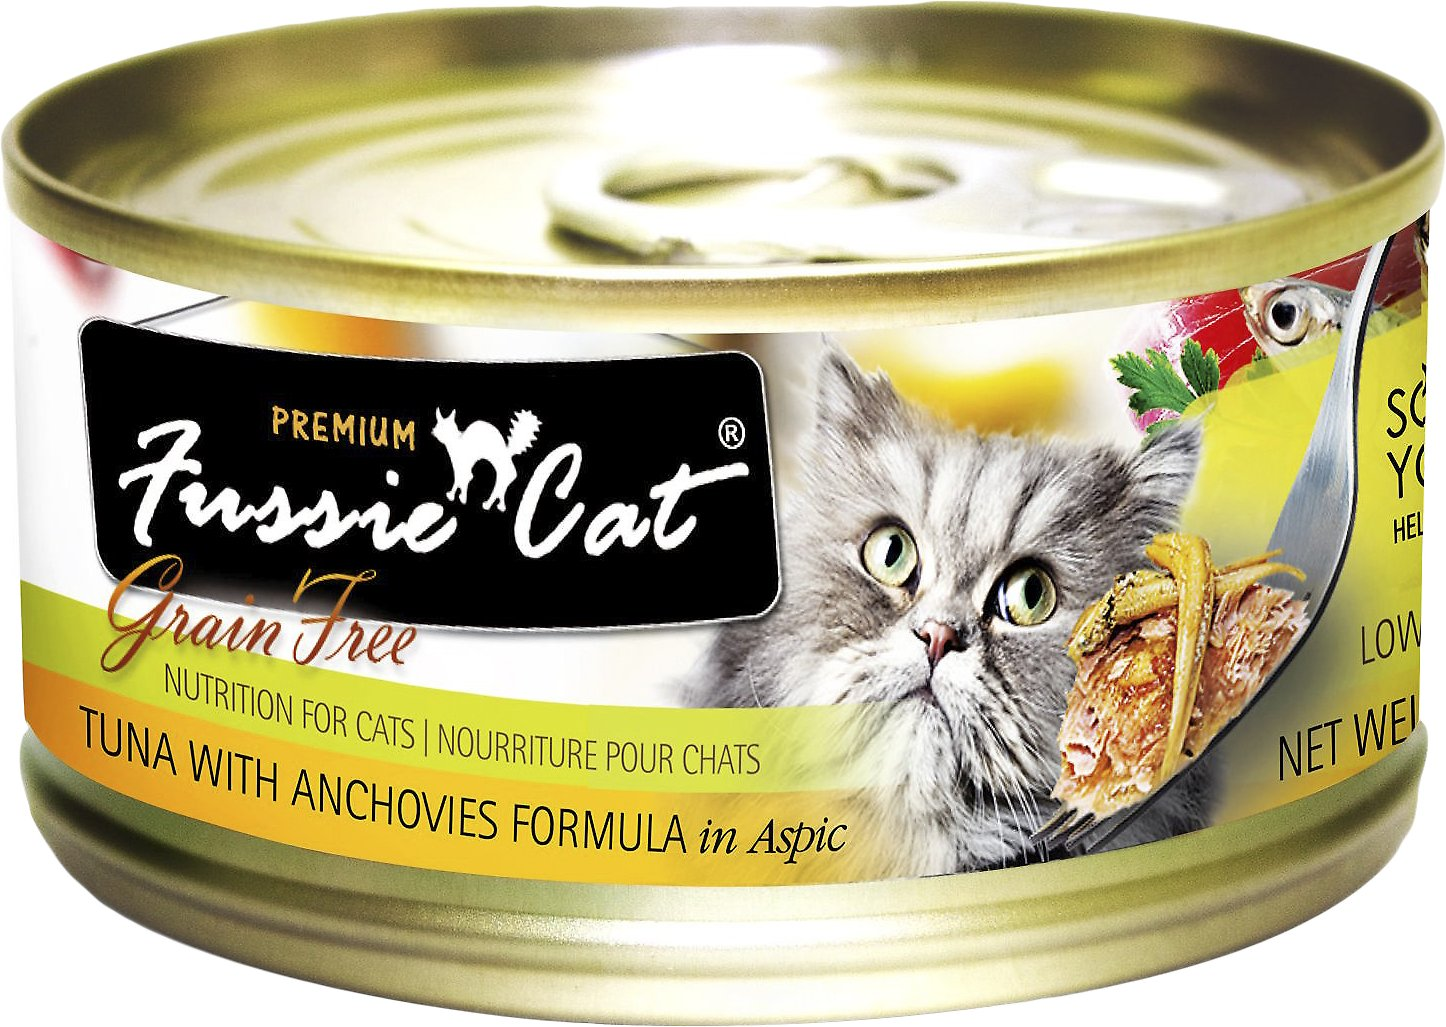 Fussie Cat Premium Tuna with Anchovies